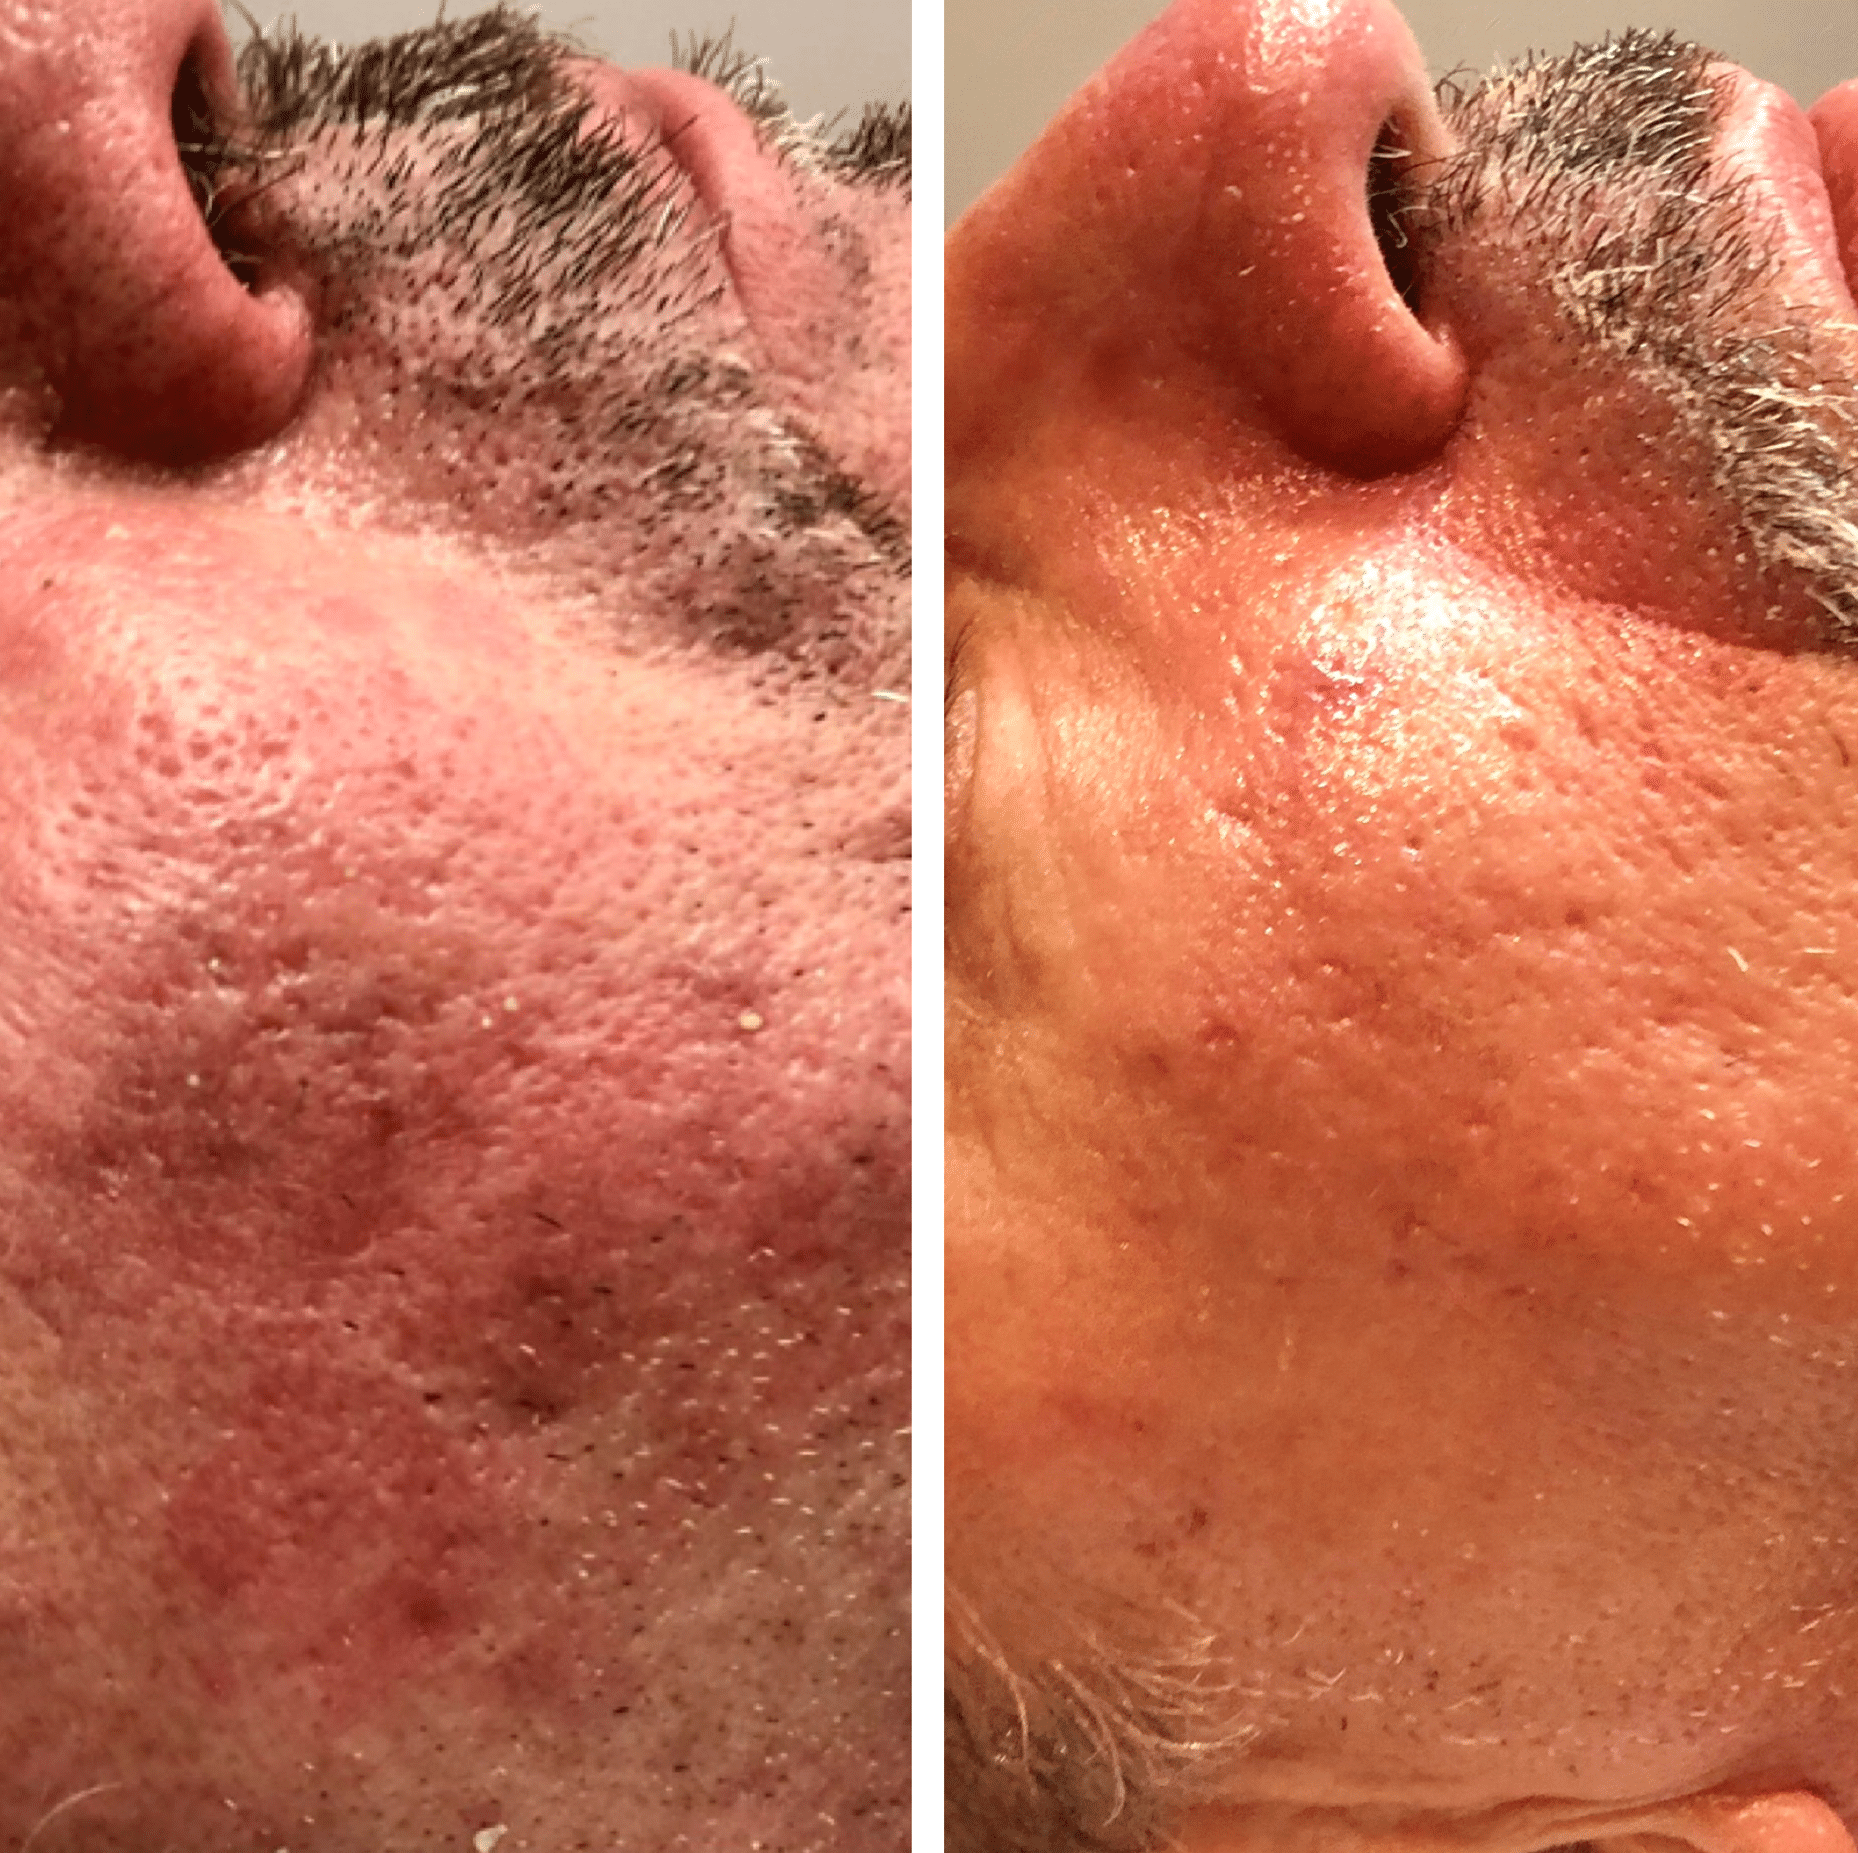 Skin Transformation by Savannah @GerrishMedEstheticsThis is after only one IPL treatment and one Hollywood Laser Peel. These procedures make a world of difference when it comes to evening out discoloration, acne, clogged pores, rosacea, redness, and sun damage. Call and schedule your free consultation or appointment today!